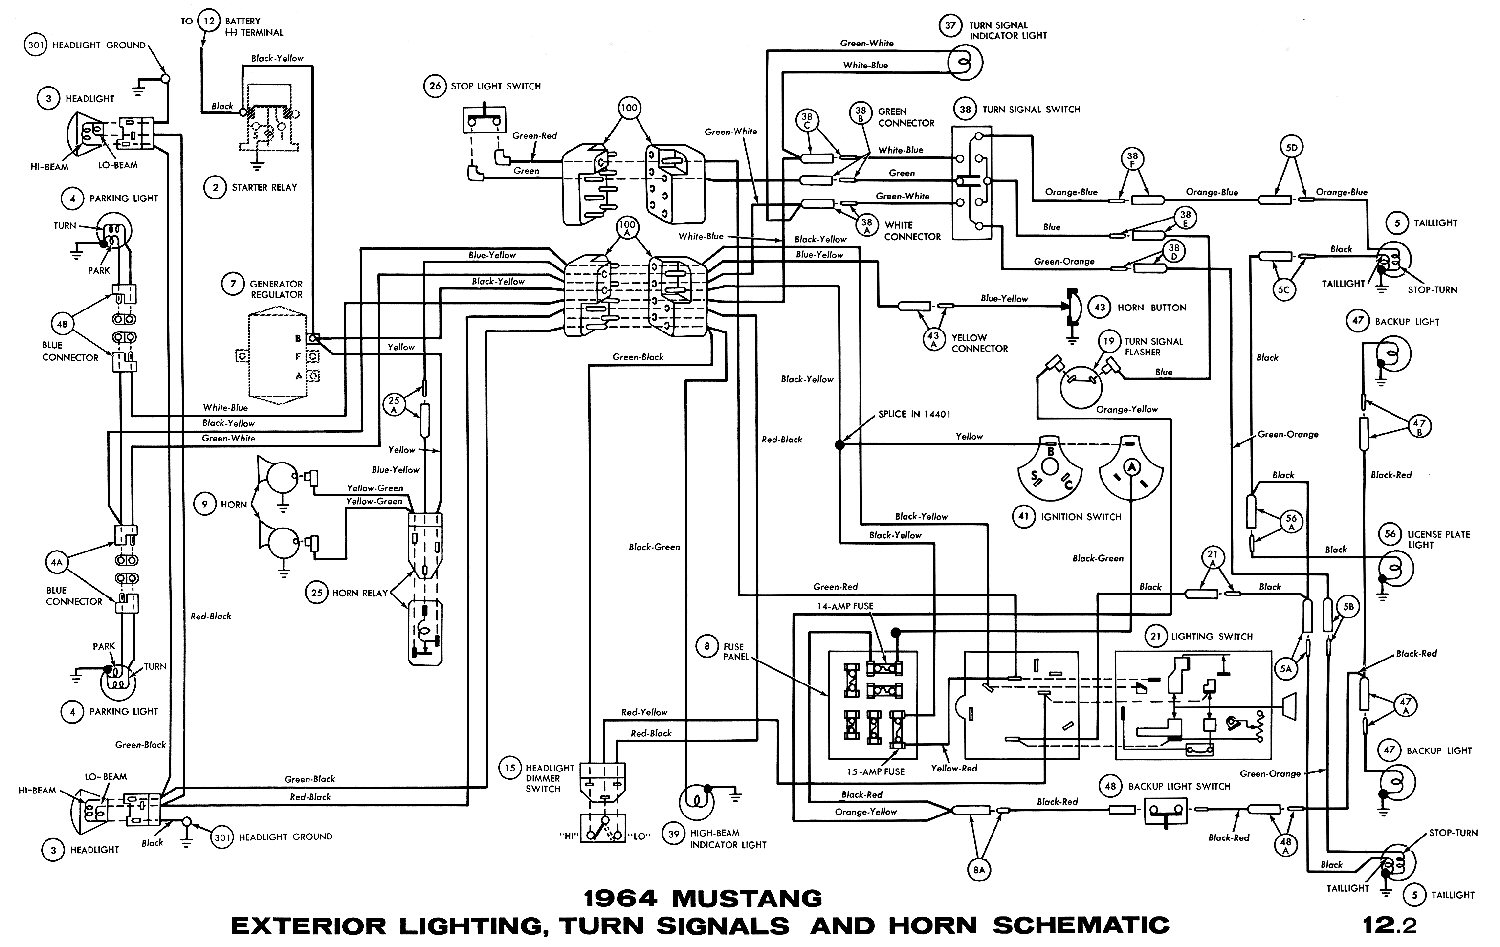 1964i 1964 mustang wiring diagrams average joe restoration 1969 mustang ignition switch wiring diagram at webbmarketing.co